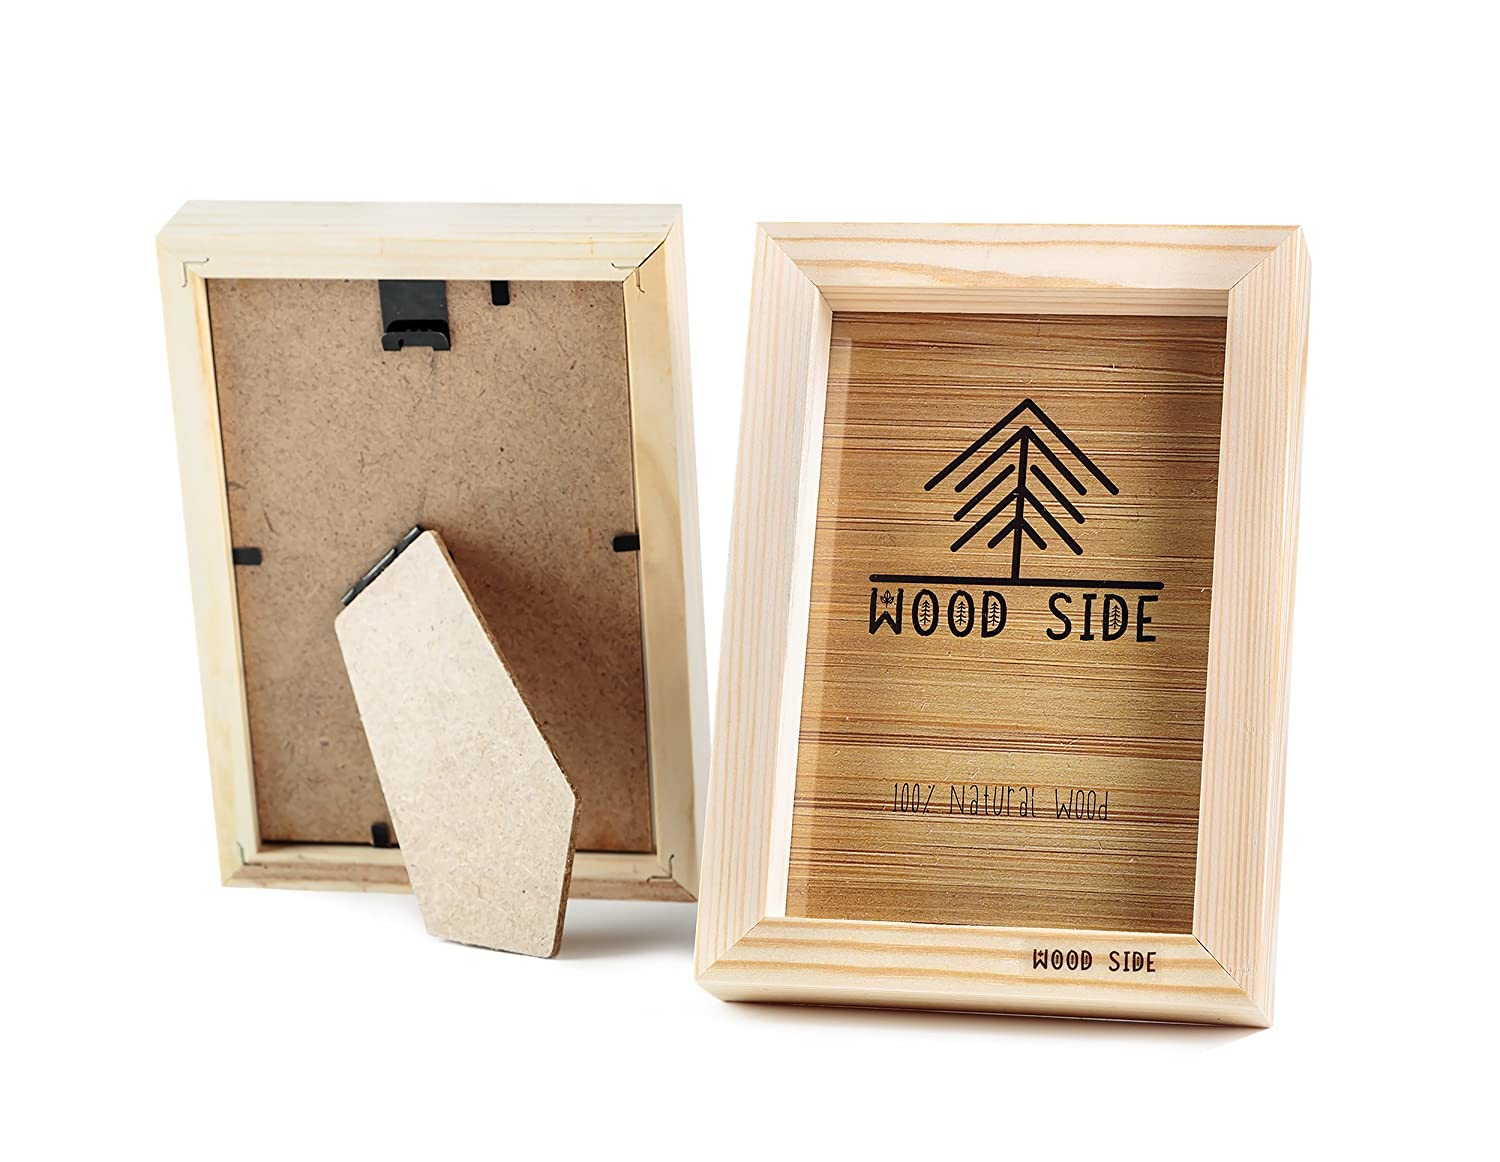 Wooden Picture frames 4x6 Inch - with Real Glass - Set of 2-Eco Unfinished Wood - Thick Borders - Natural Wood Color for Table Top Display and Wall Mounting Photo Frame